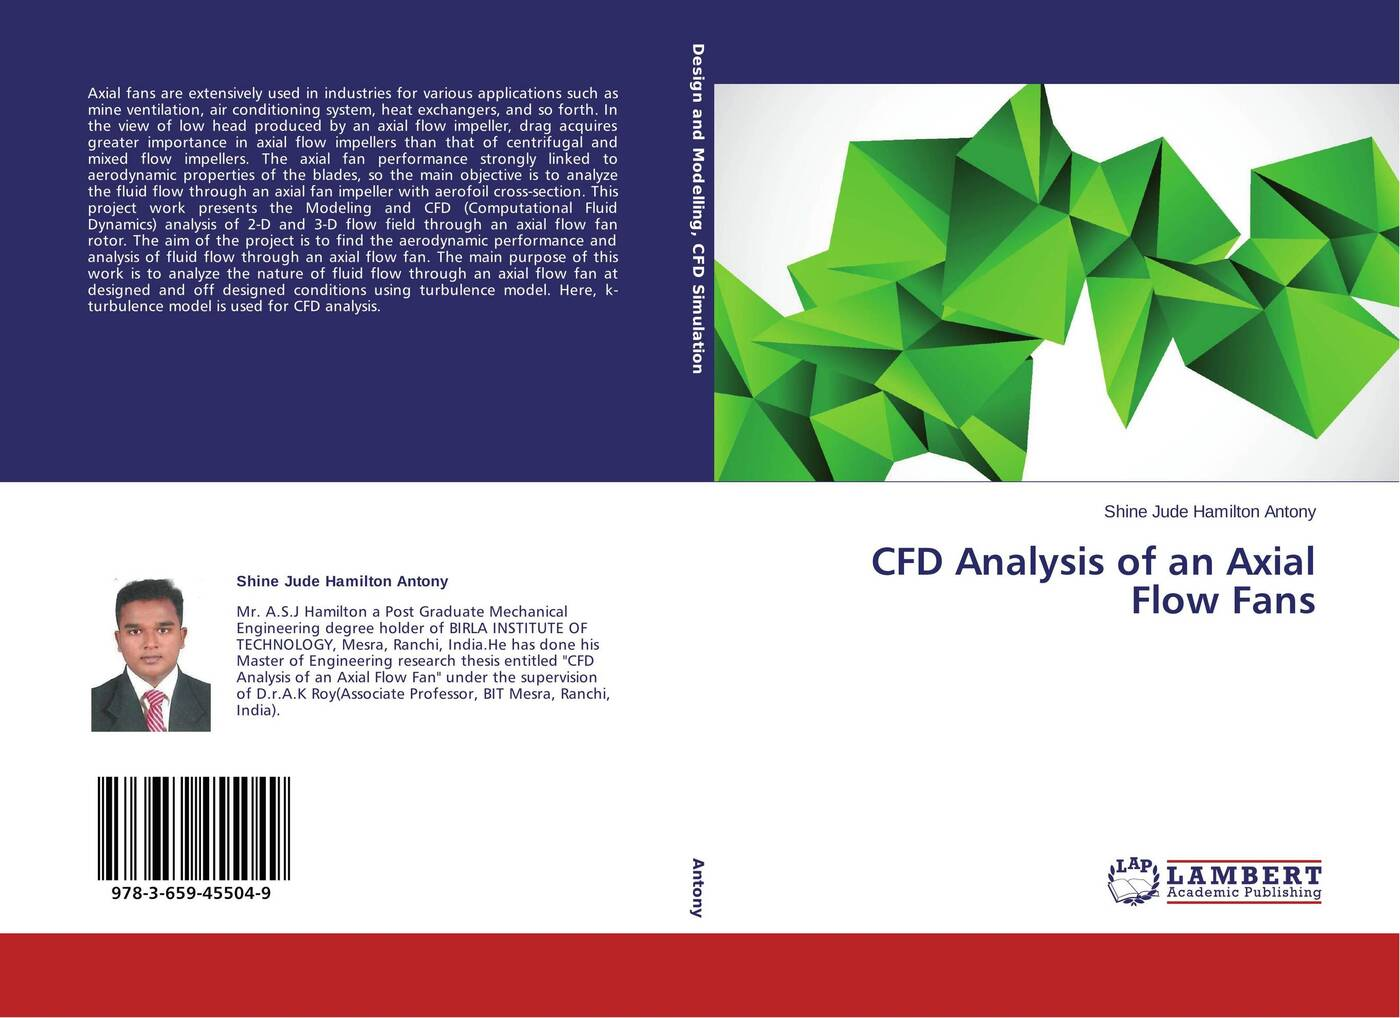 Shine Jude Hamilton Antony CFD Analysis of an Axial Flow Fans flow in games aural conditioning